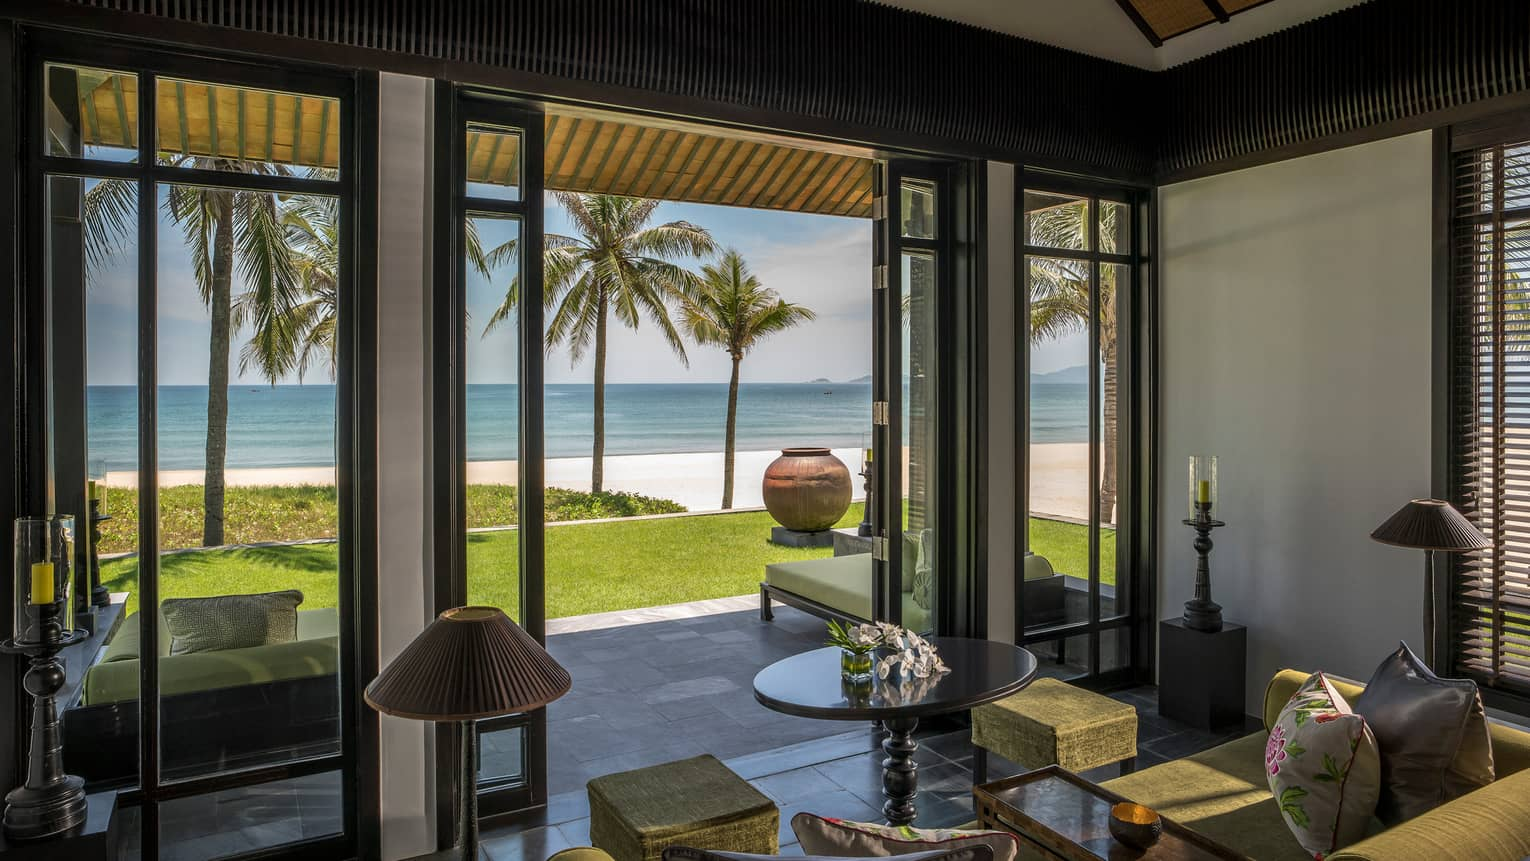 Beachfront Villa living room with open walls to lawn, palm trees, beach, ocean